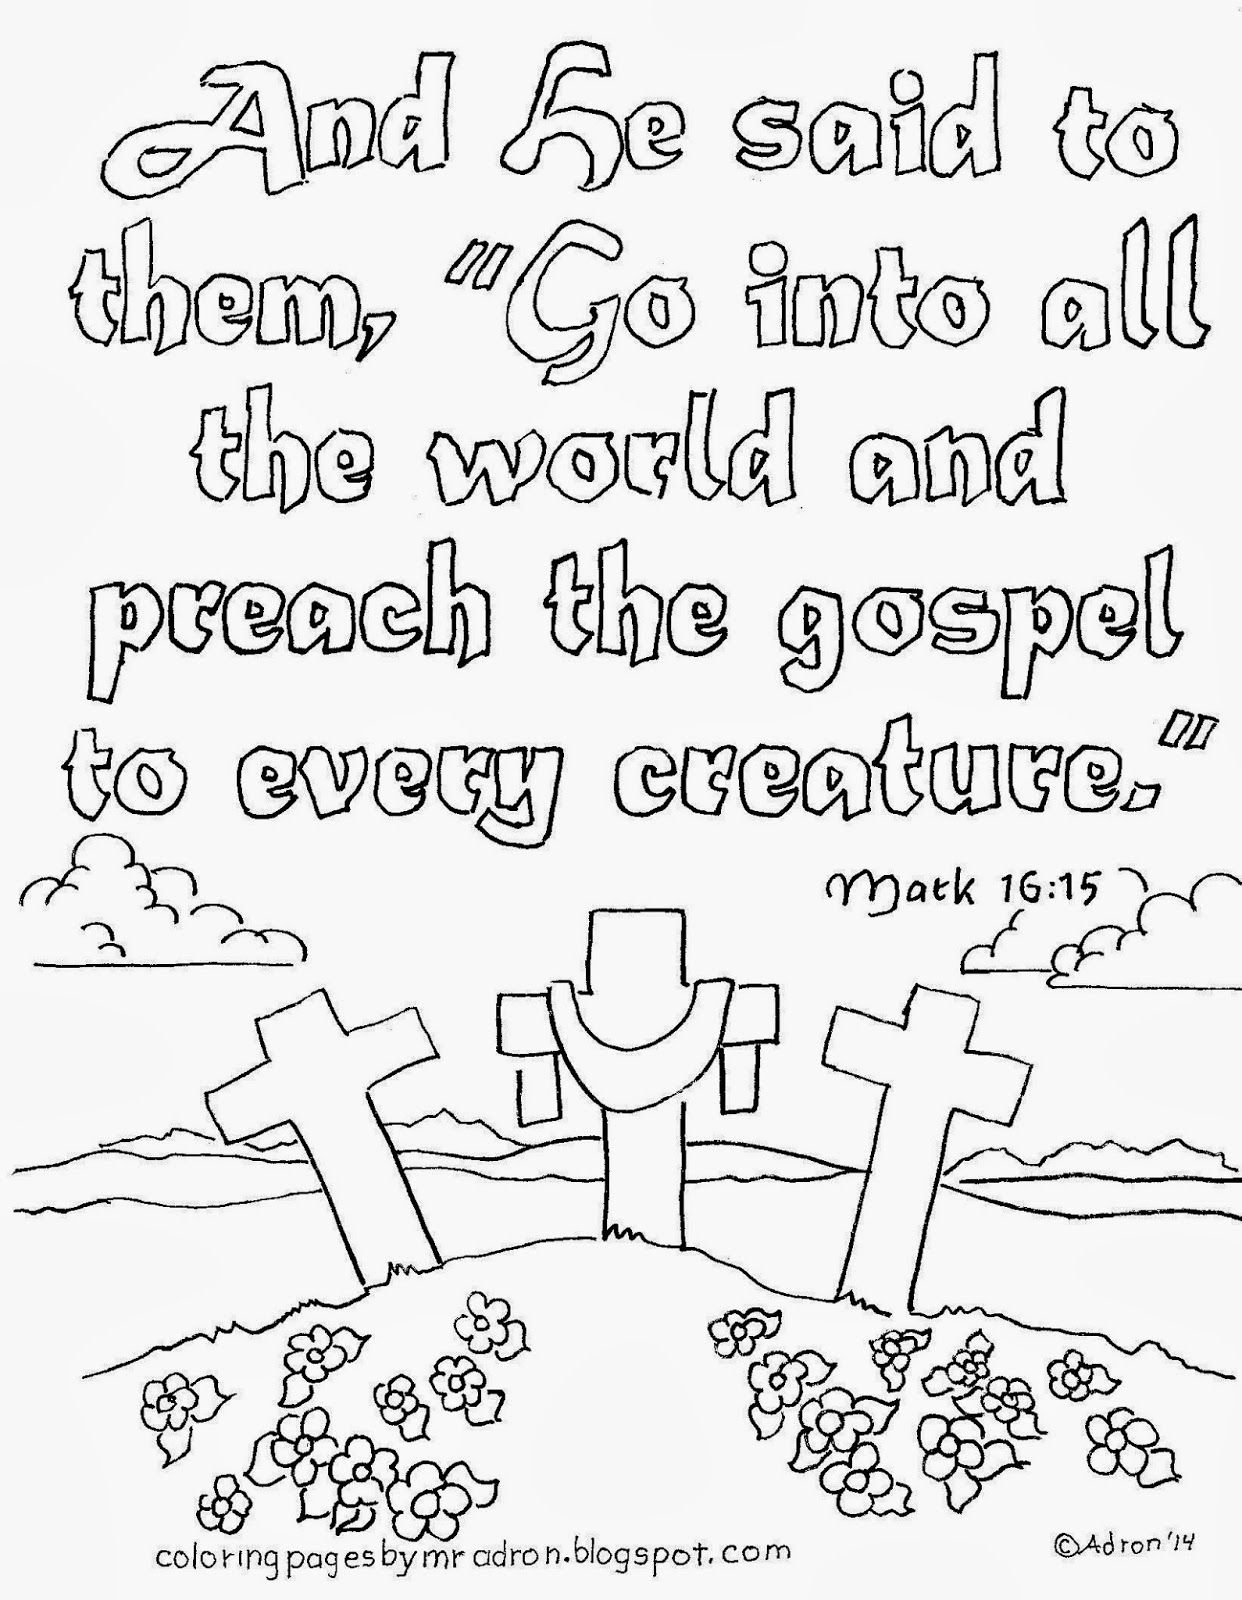 Go Preach The Gospel Free Kid S Coloring Page Mark 16 15 With